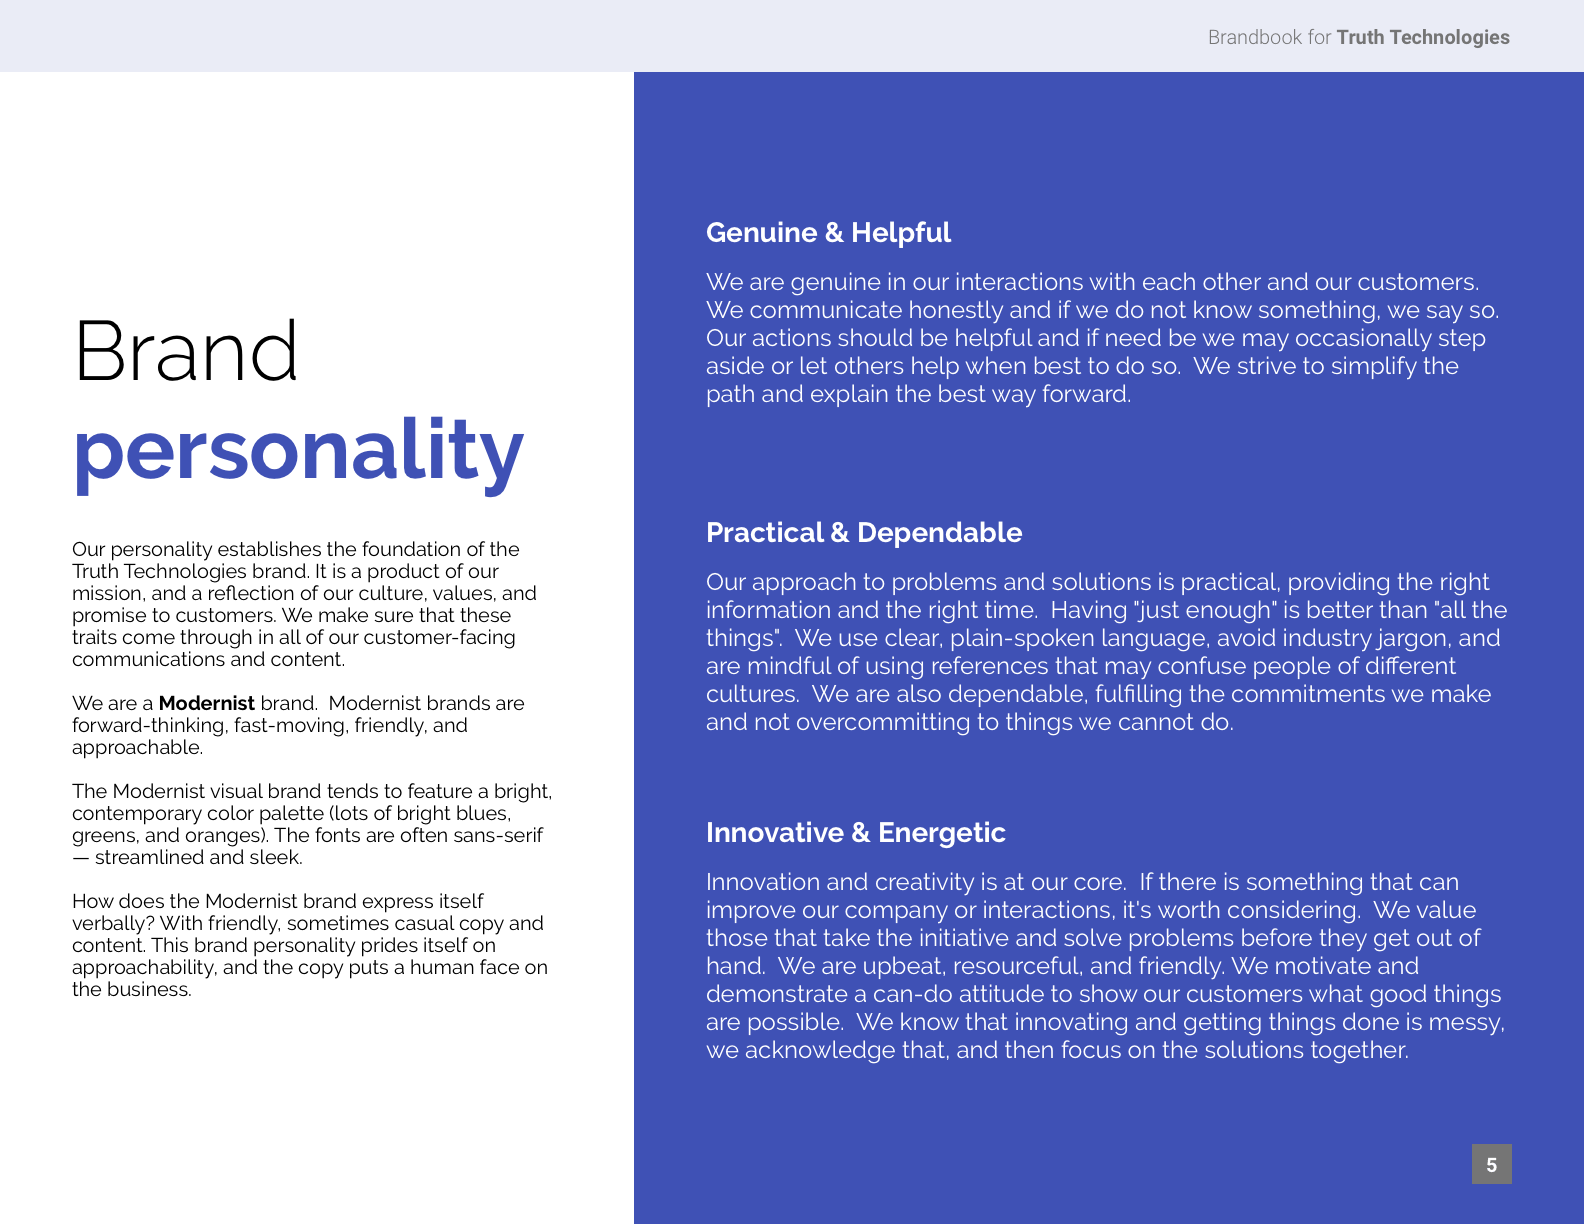 rebrand-02-brand-guide-02-personality.png